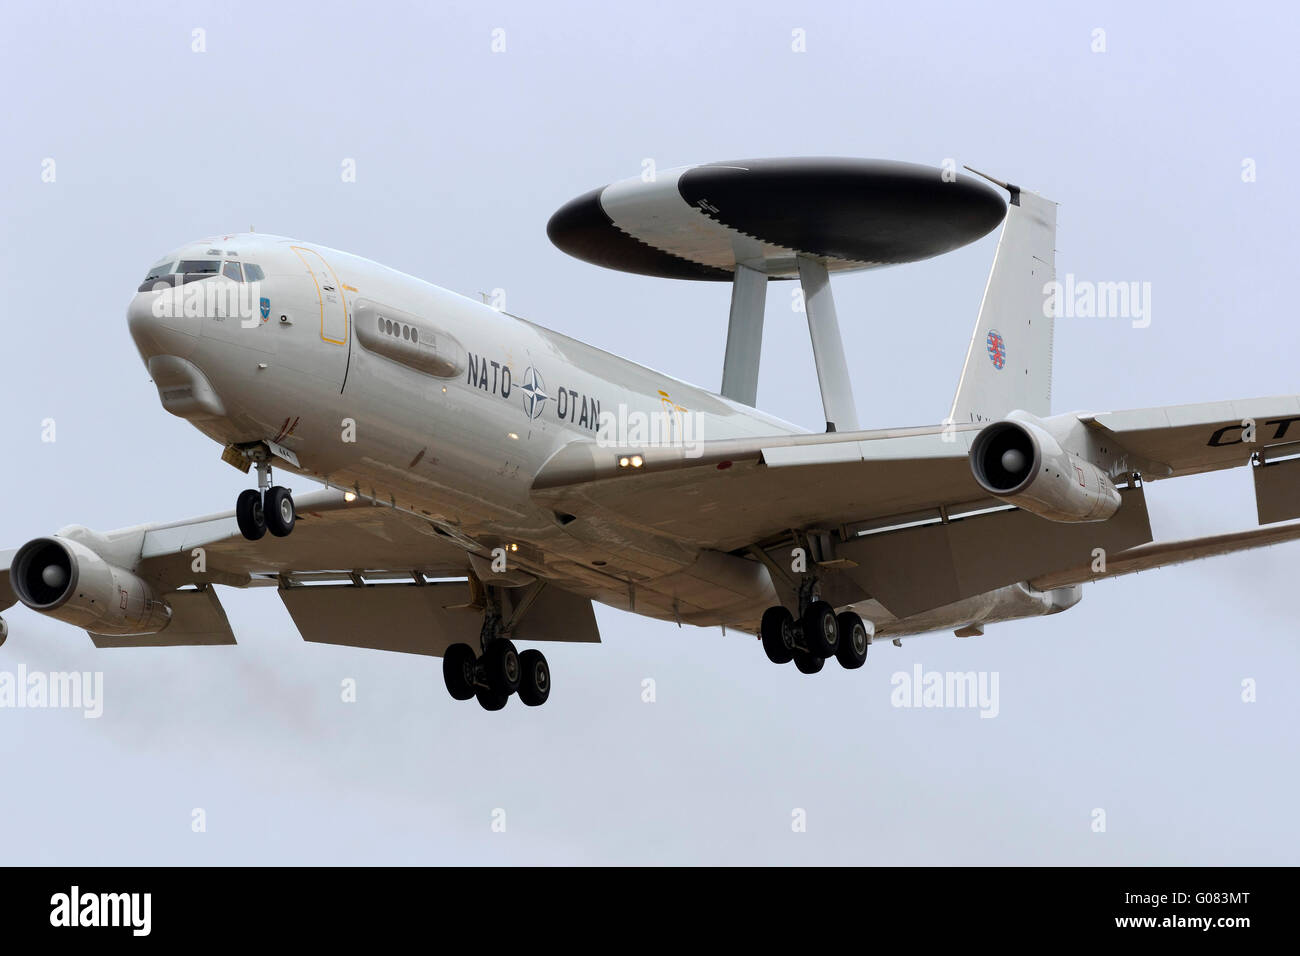 Luxembourg NATO Boeing E-3A Sentry (707-300) arriving to participate in the Airshow during the next weekend. - Stock Image